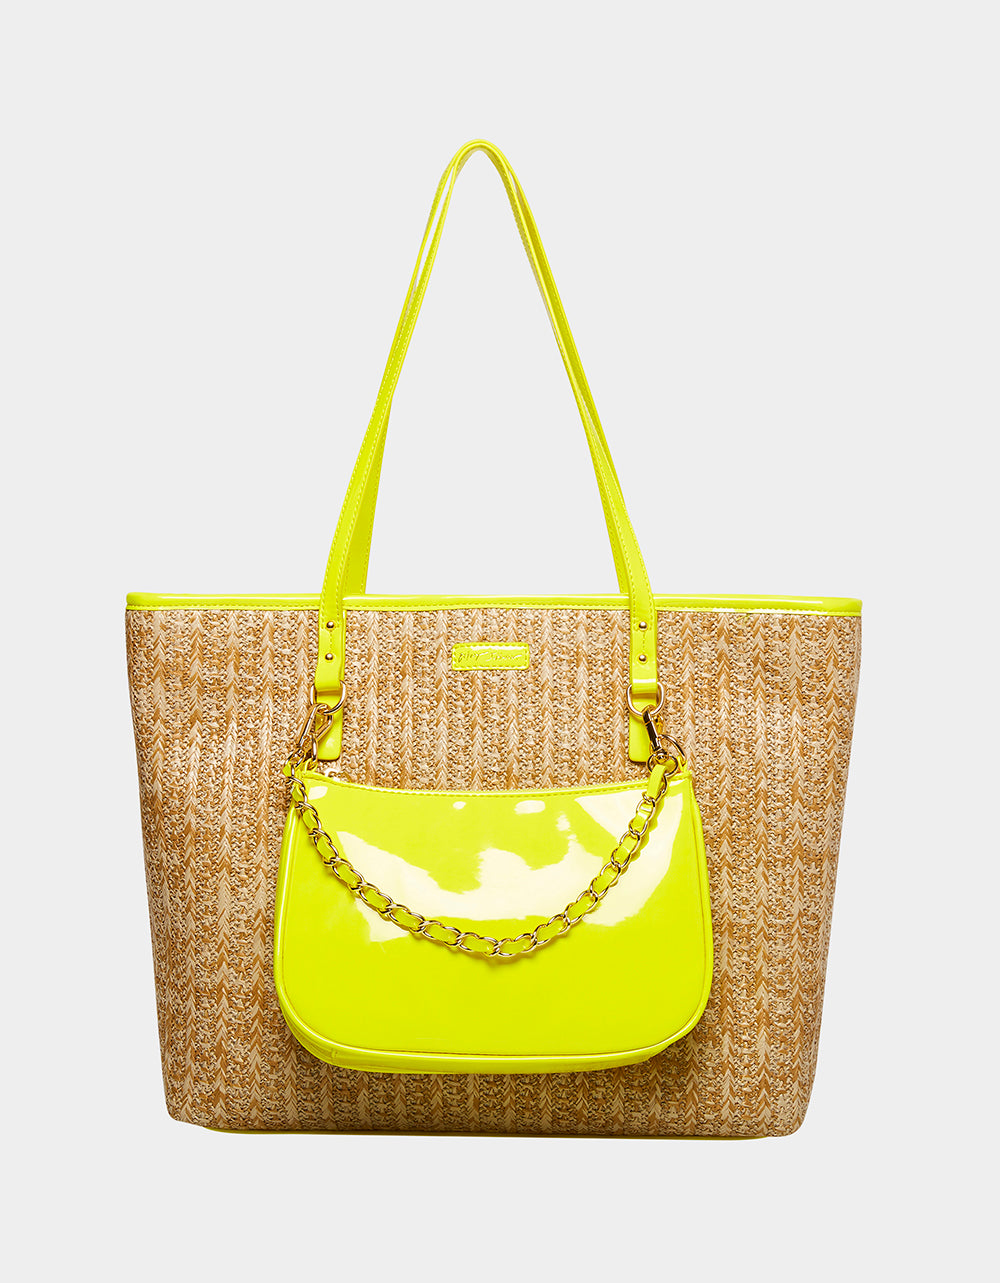 BRIGHT SPOT STRAW TOTE COMBO YELLOW